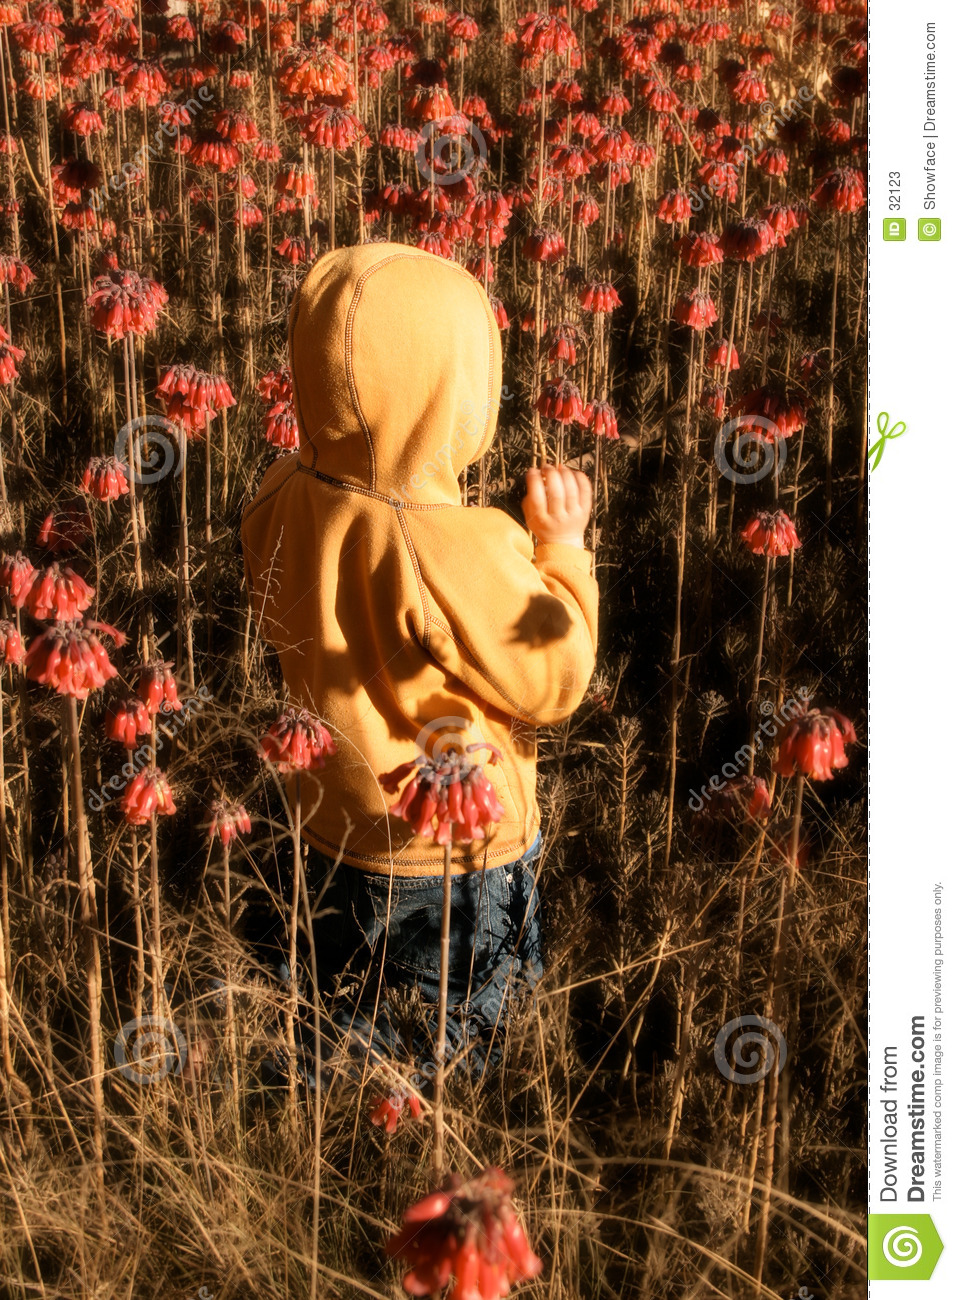 Kind in wildflowers